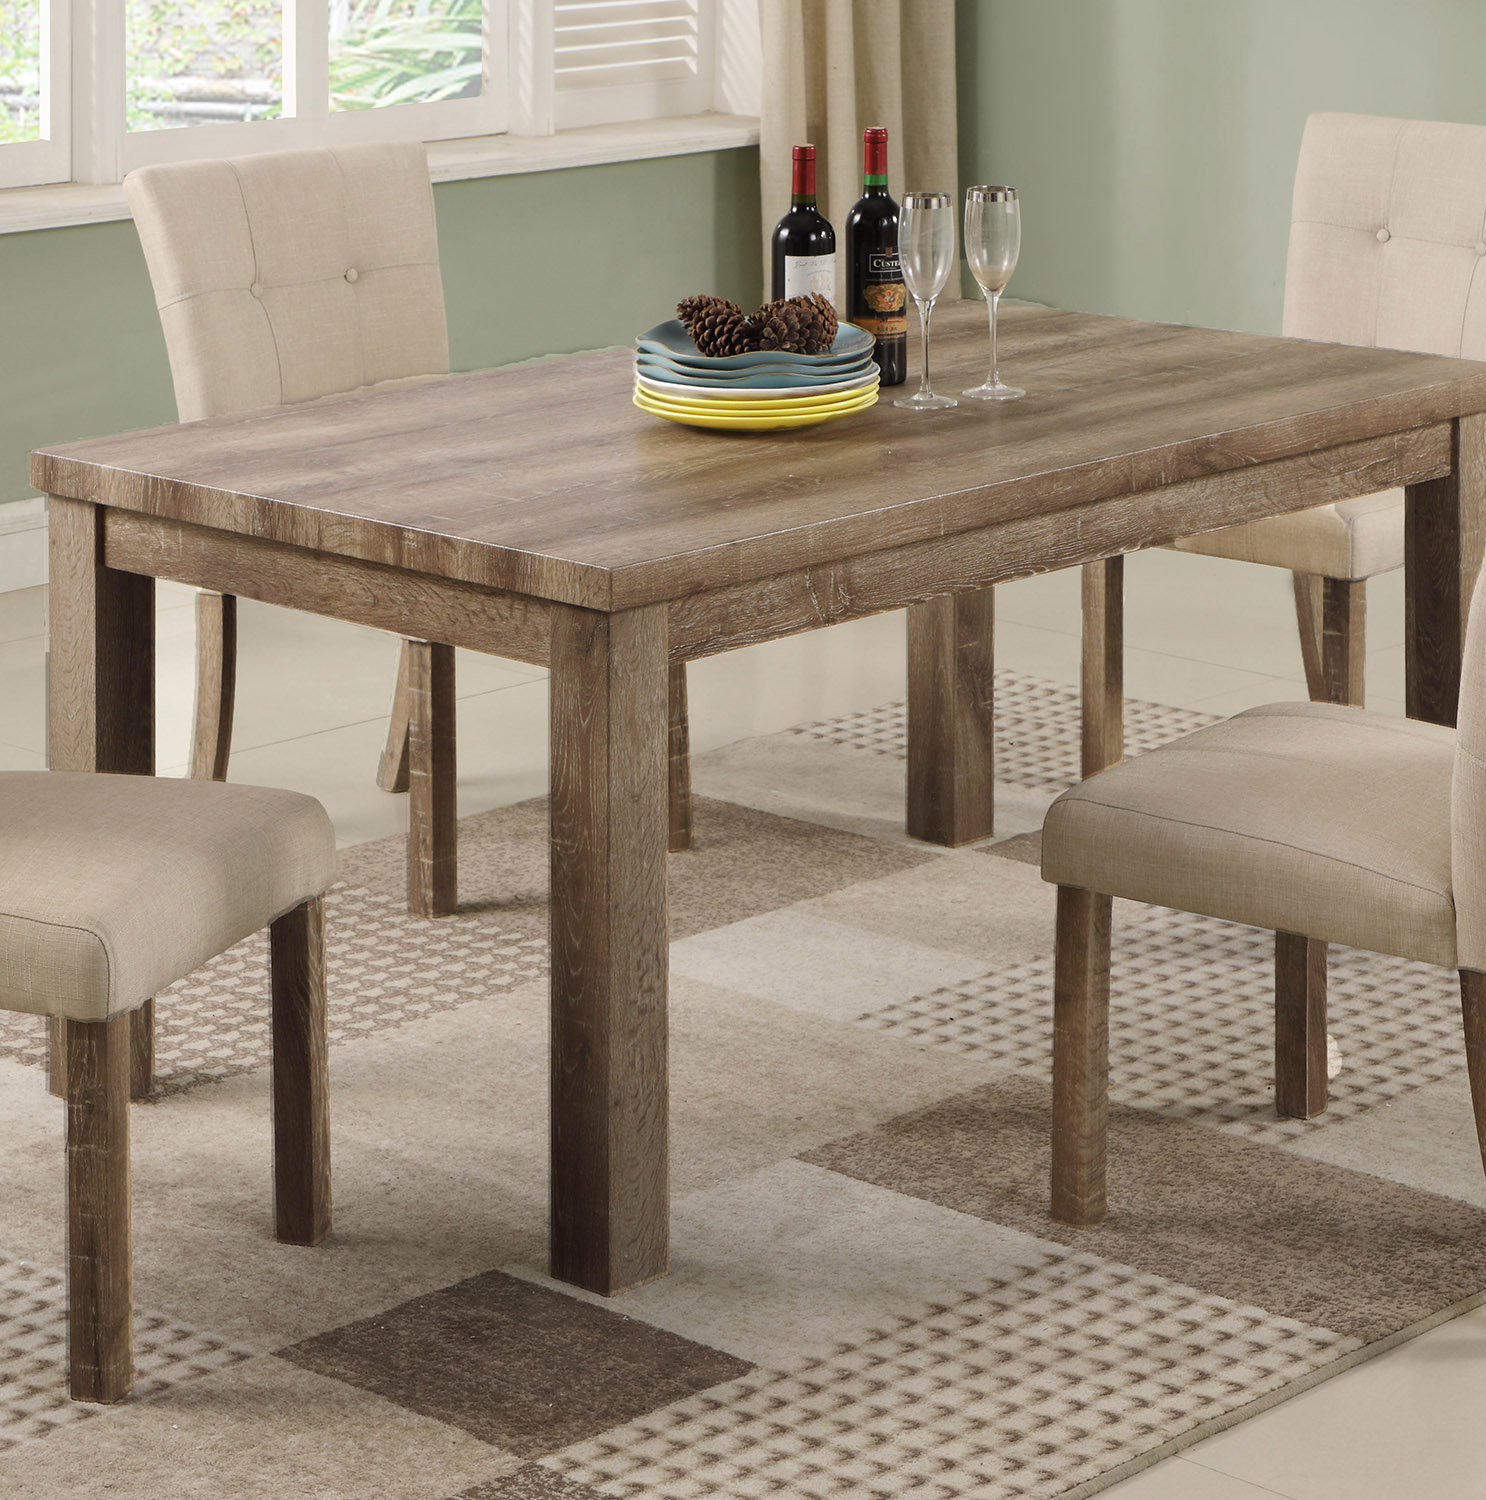 Ebay With Regard To Well Known Ephraim 5 Piece Dining Sets (View 10 of 20)